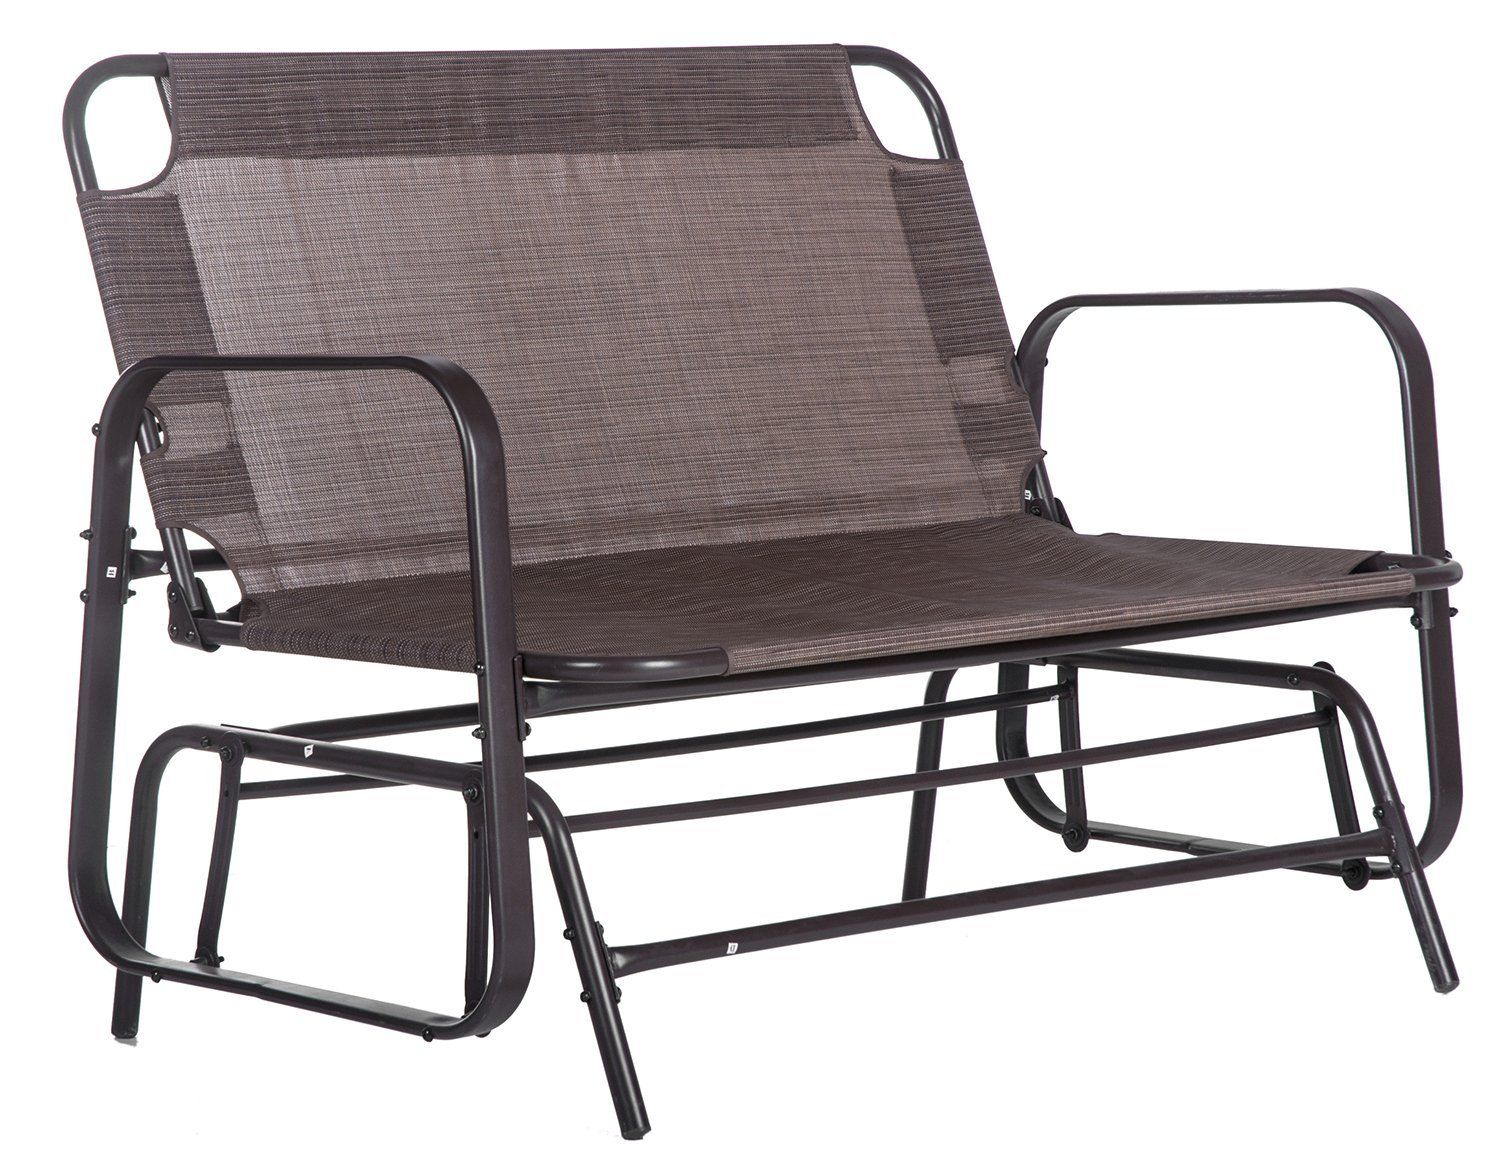 Merax Patio Loveseat Glider Rocking Chair Garden Outdoor